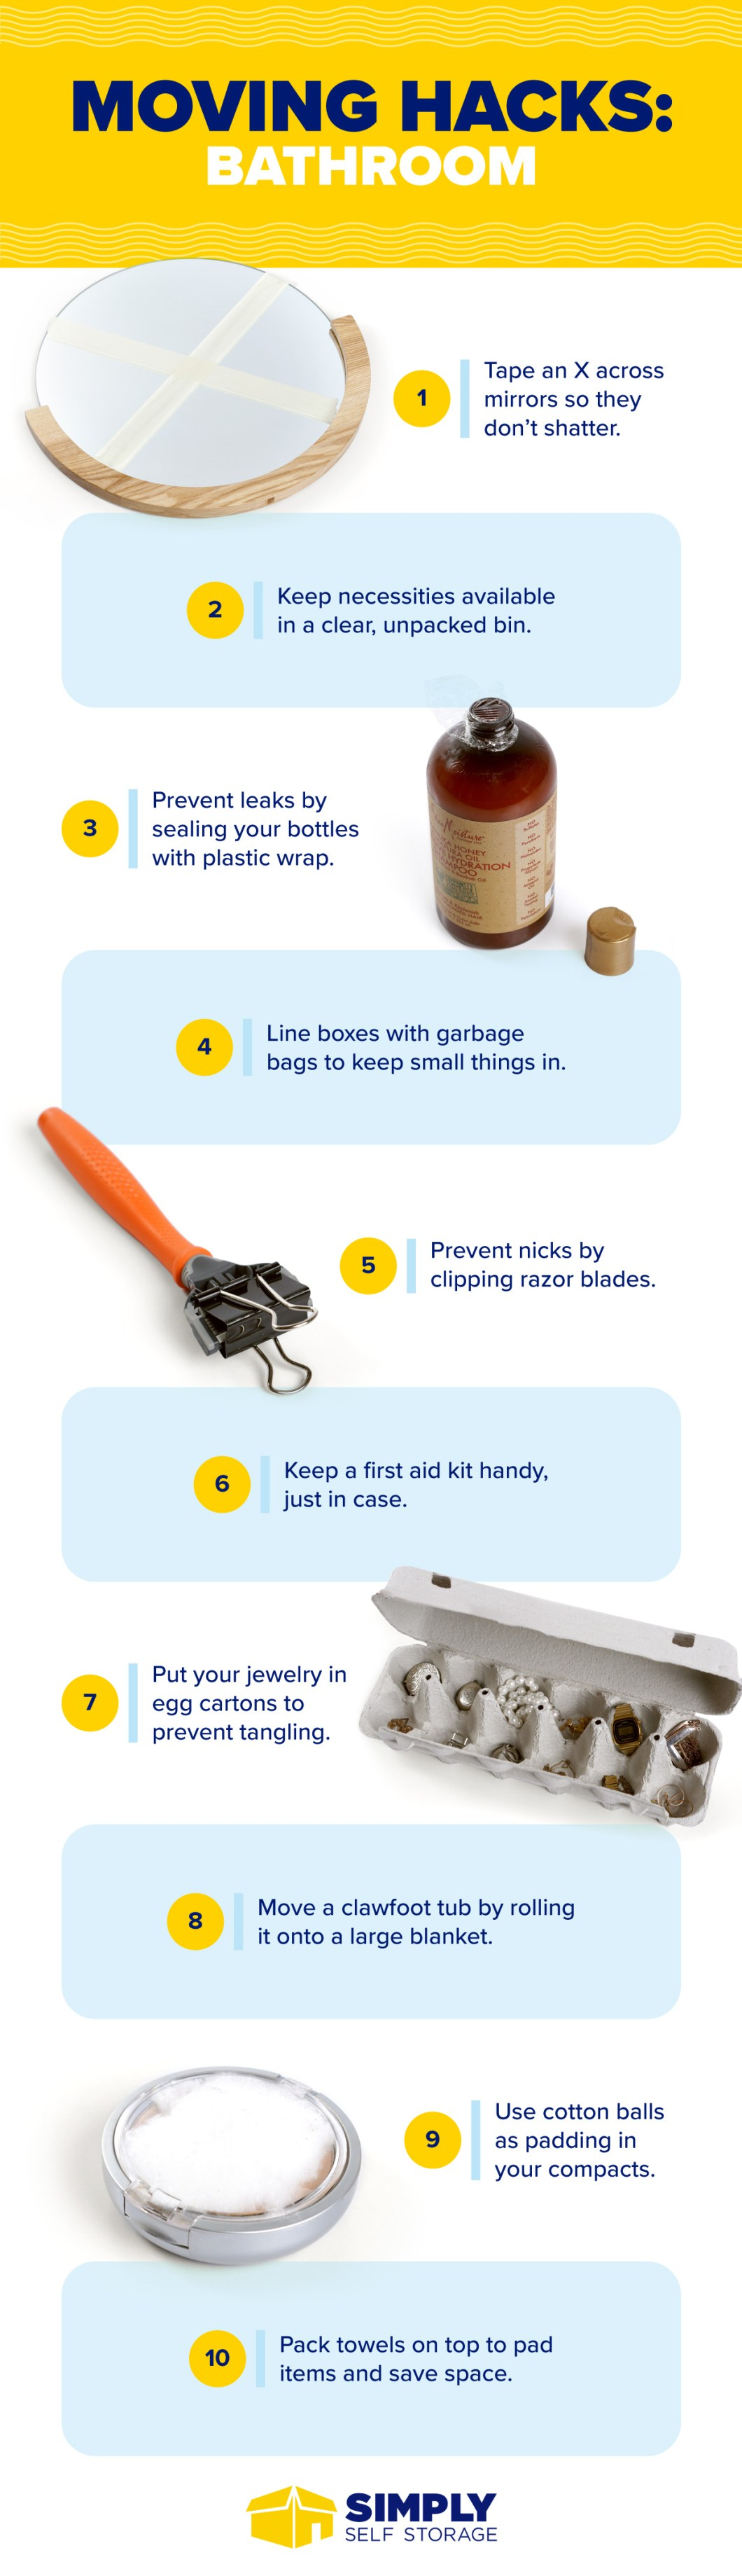 No More Moving-House Blues: 50 Essential Moving Hacks - Infographic